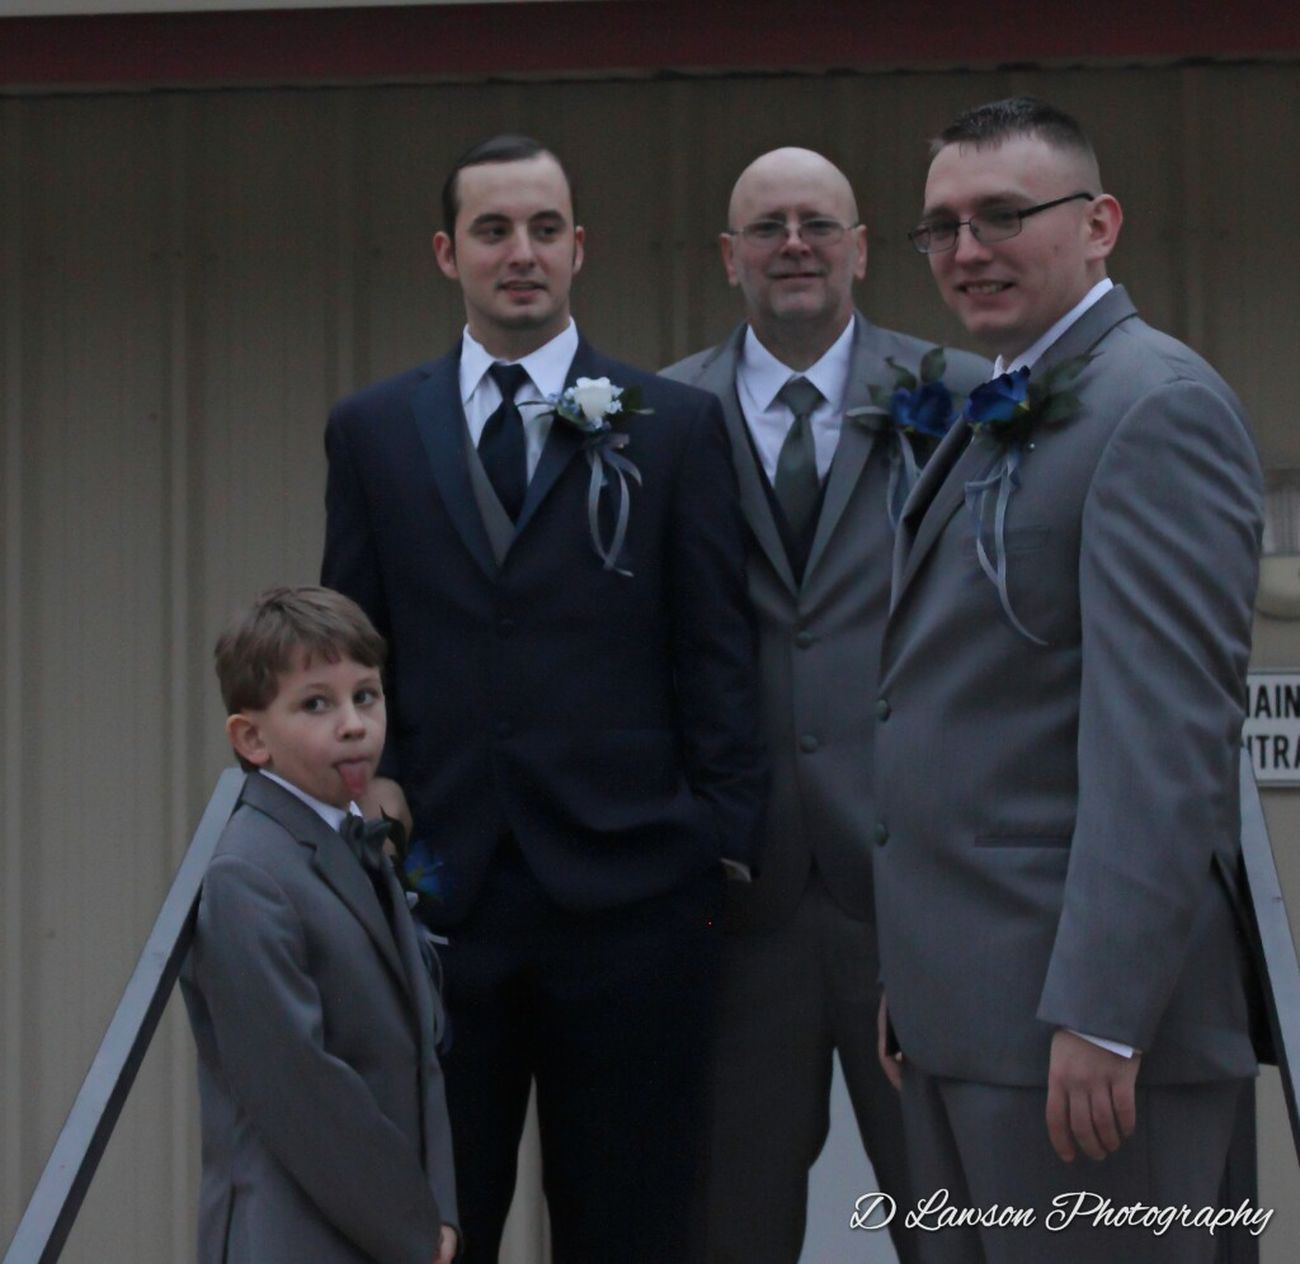 Men Portrait Togetherness Wedding Ceremony Life Events Love Happily Ever After Groomsmen Groom